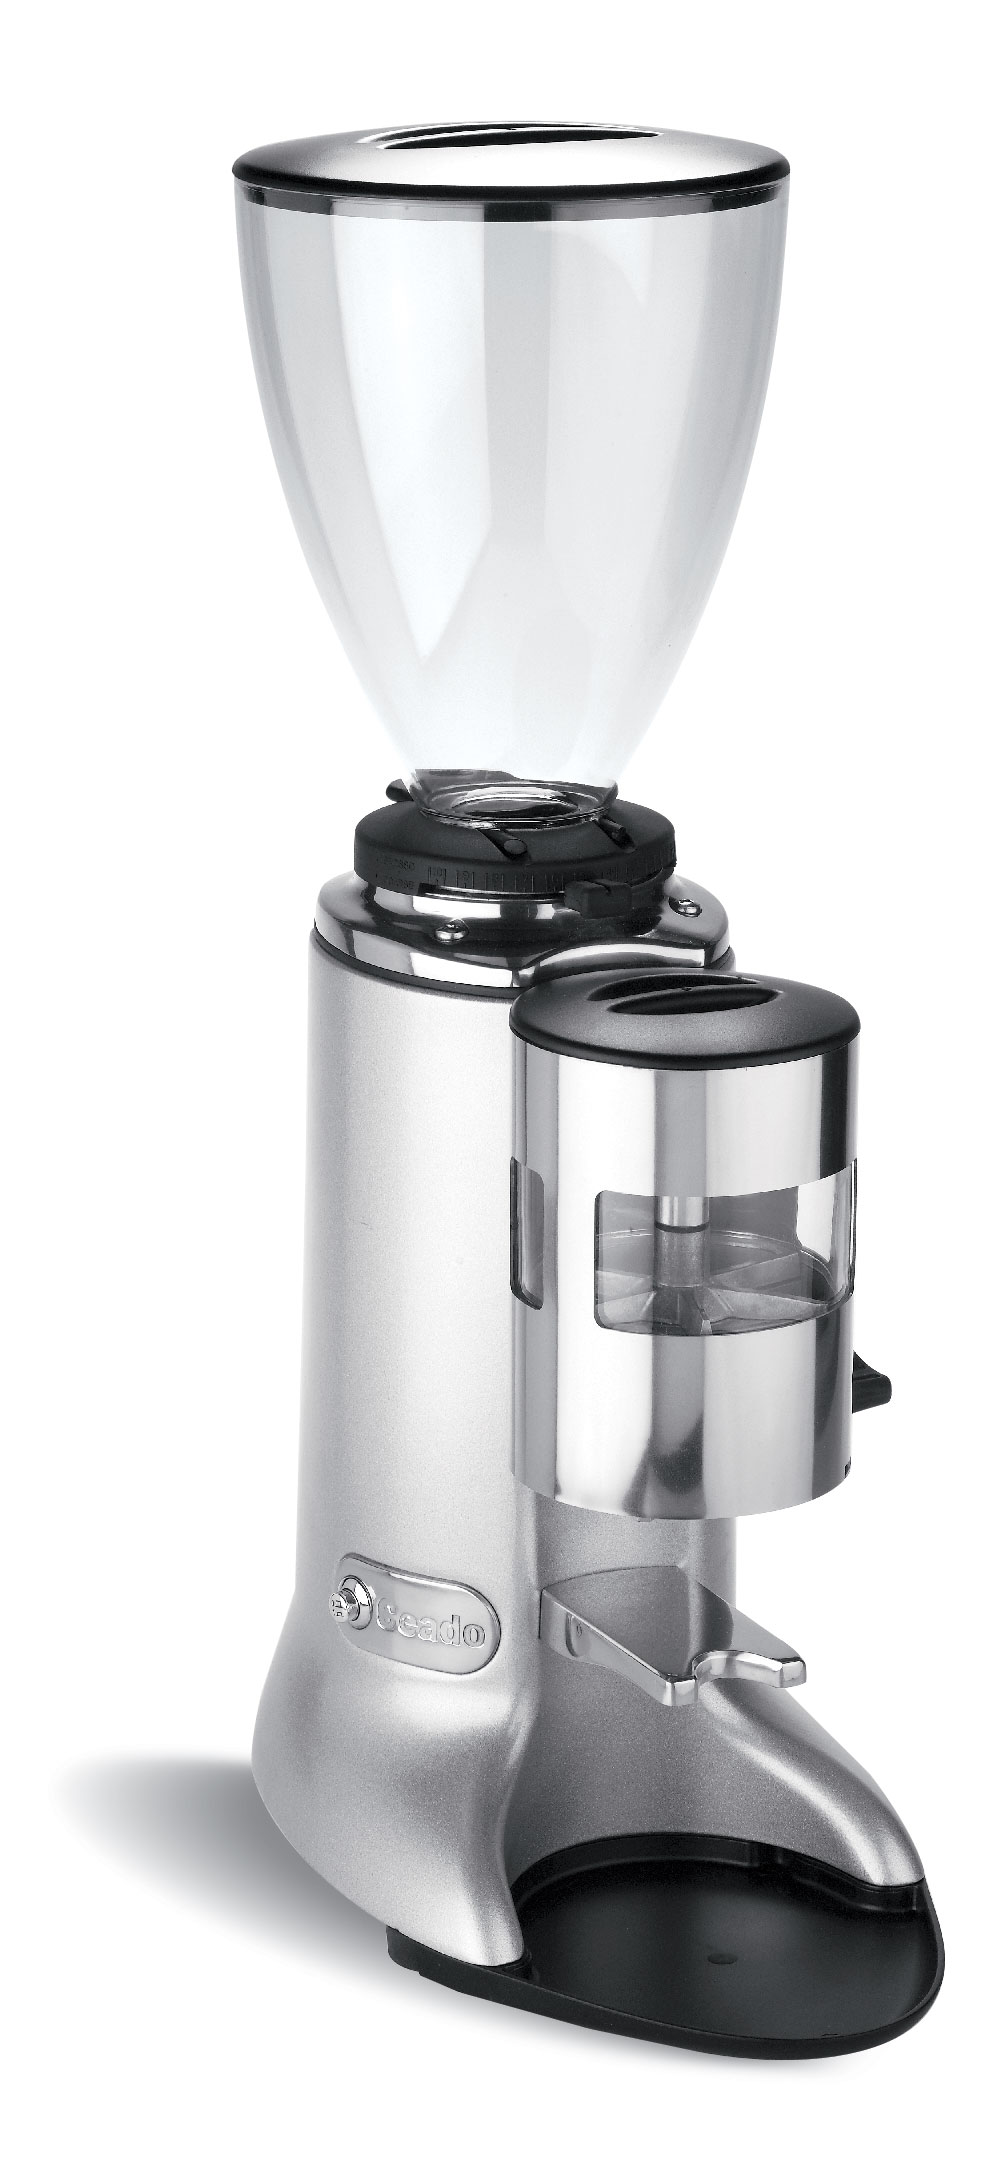 Ceado E6 Coffee Grinder